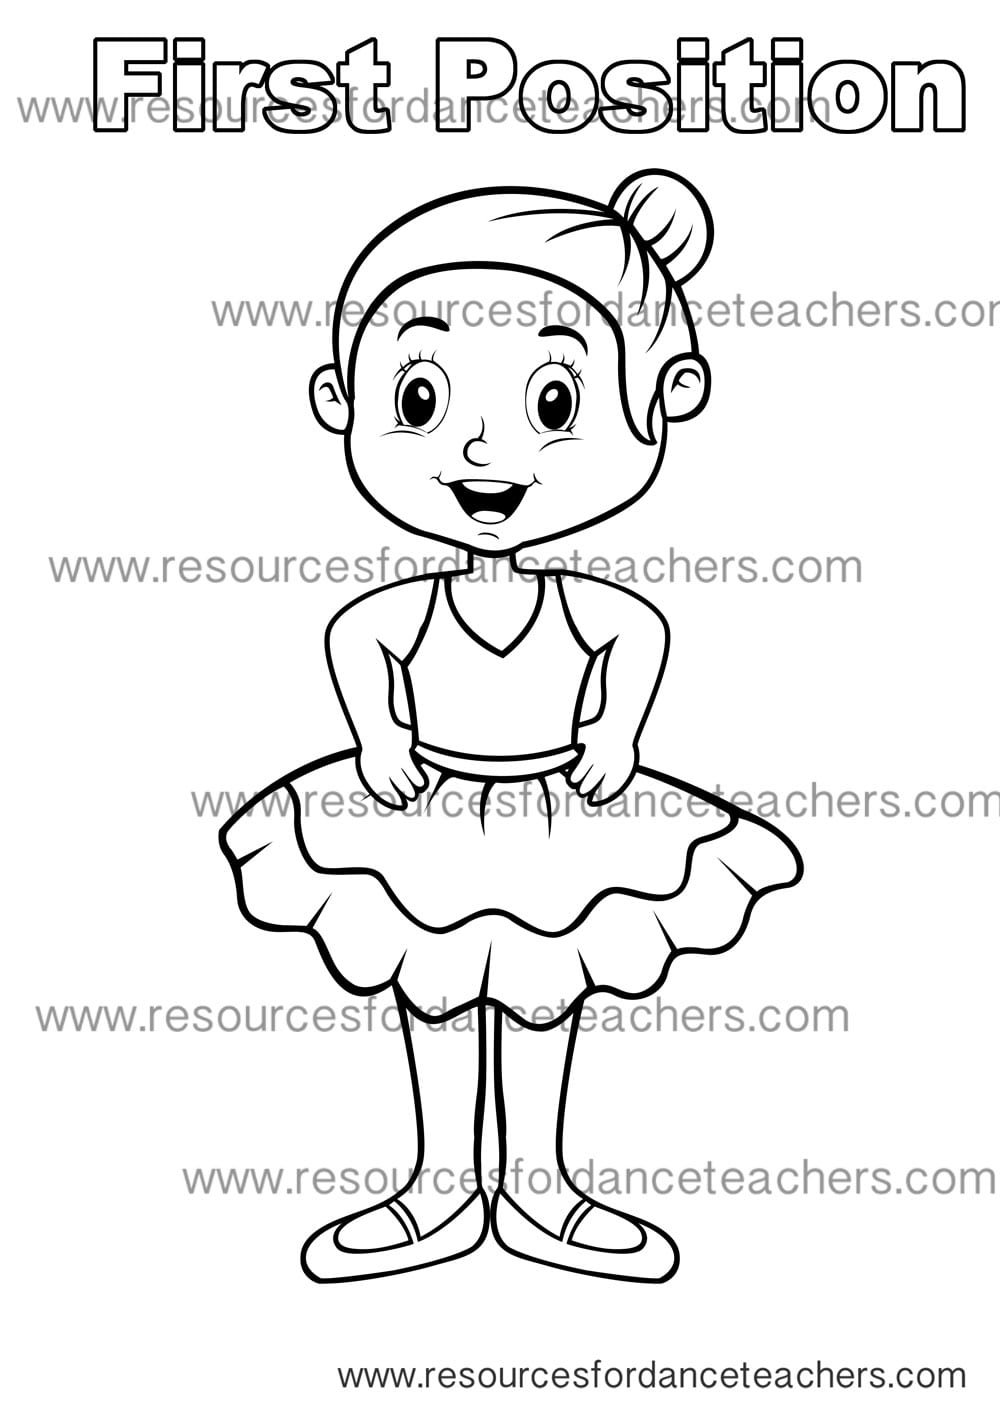 kindergarden teachers coloring pages - photo#43